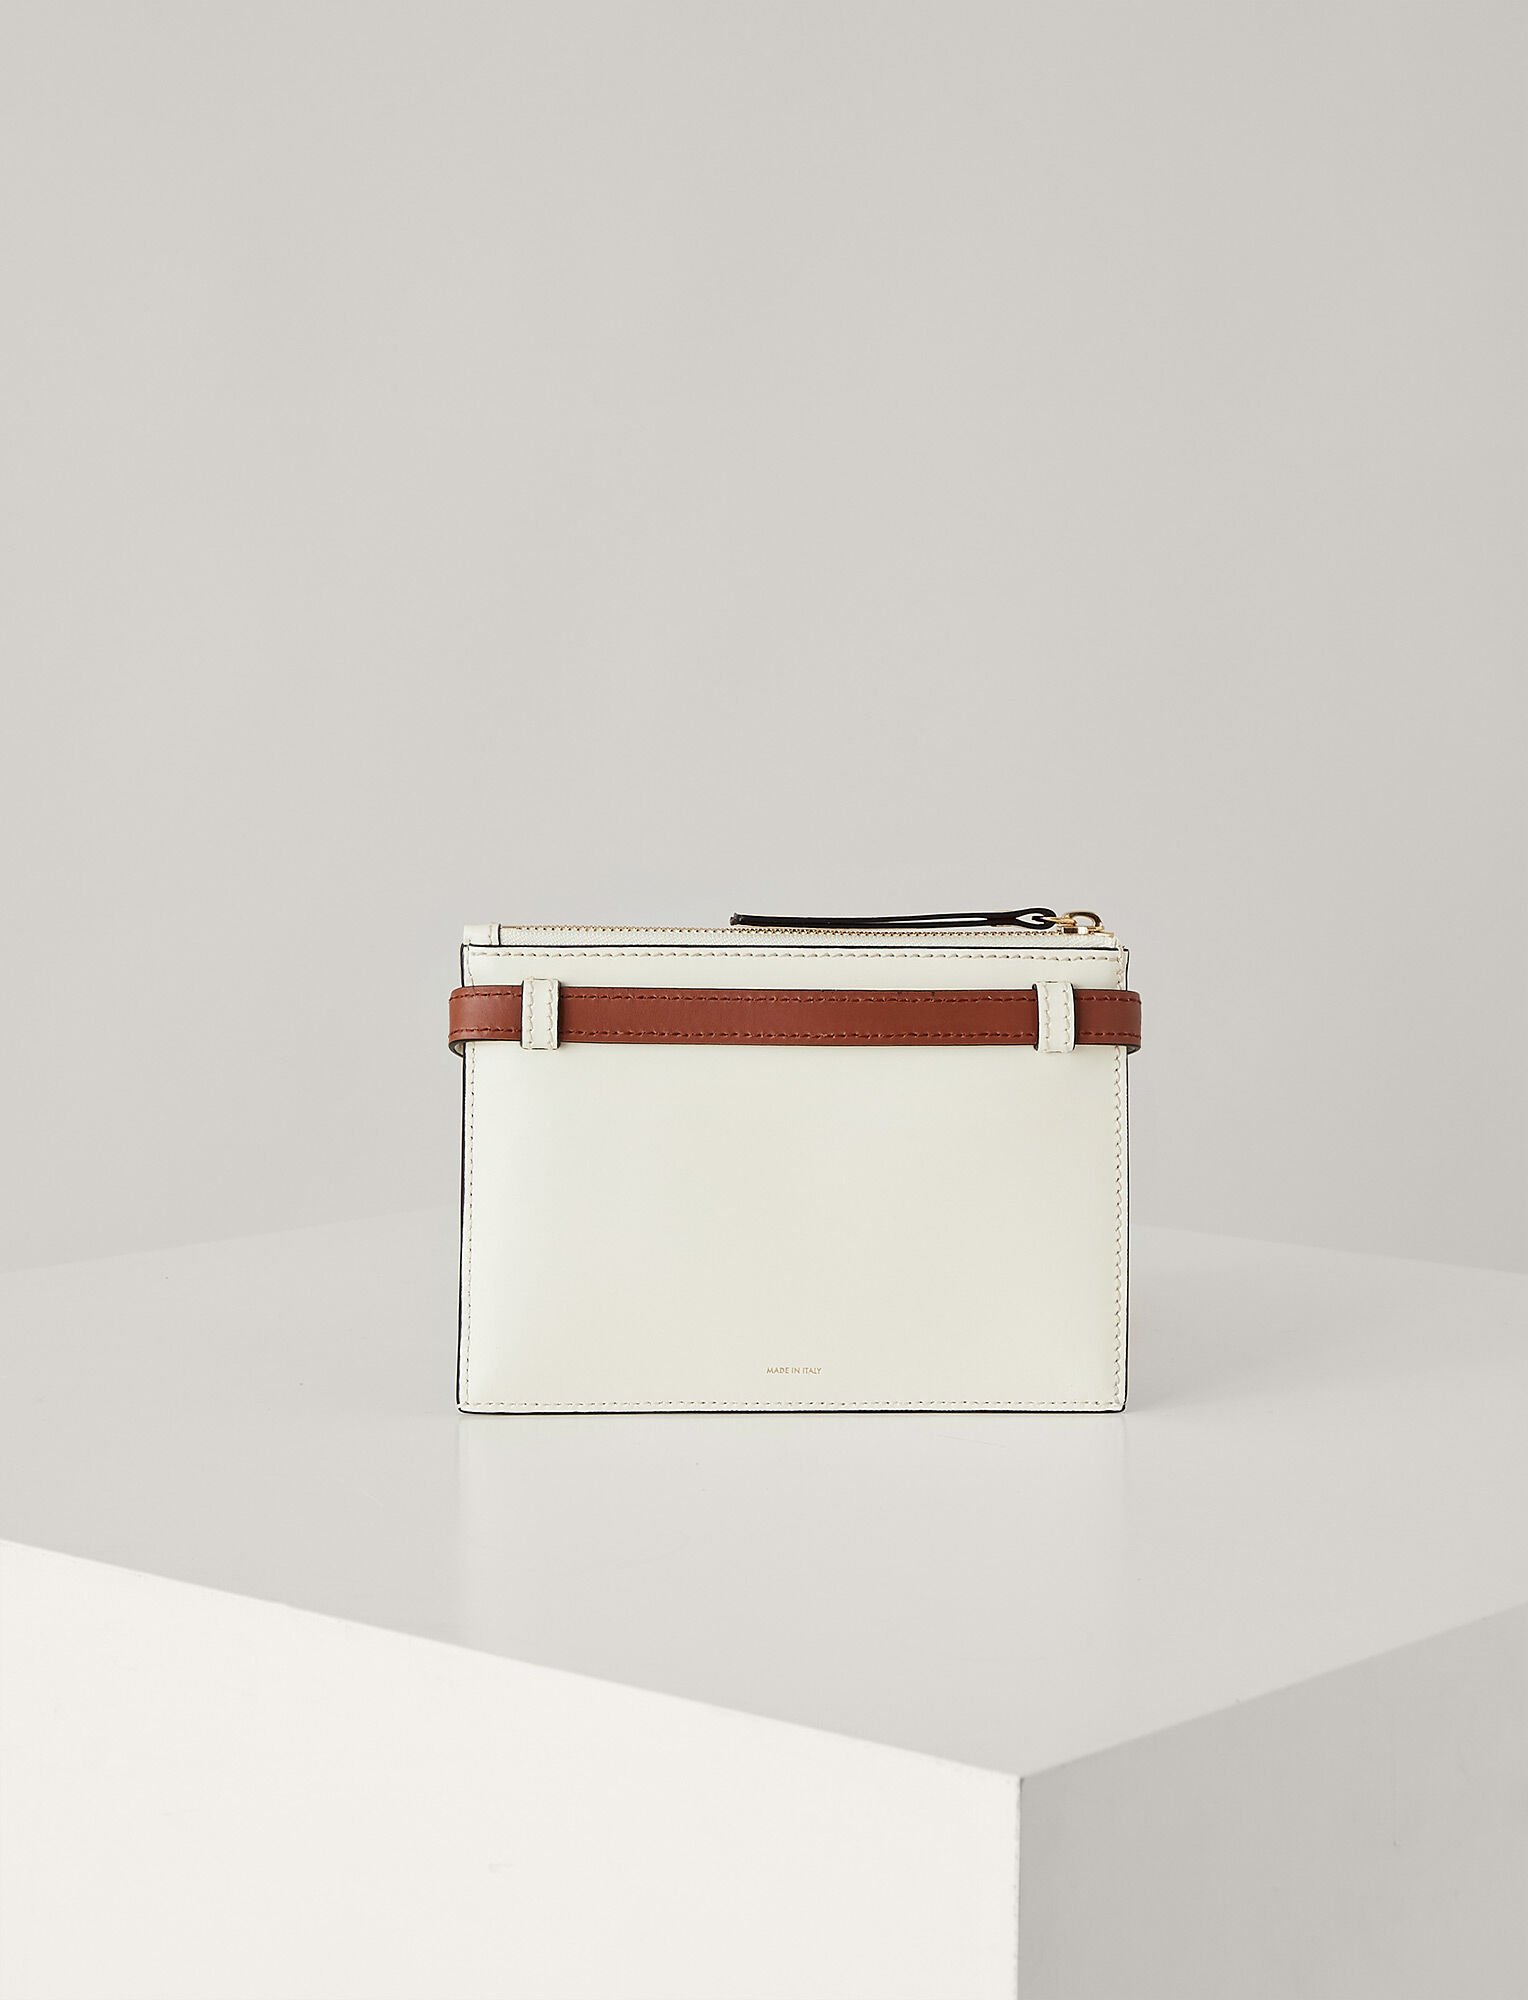 Joseph, Montmartre Leather Bag, in CREAM